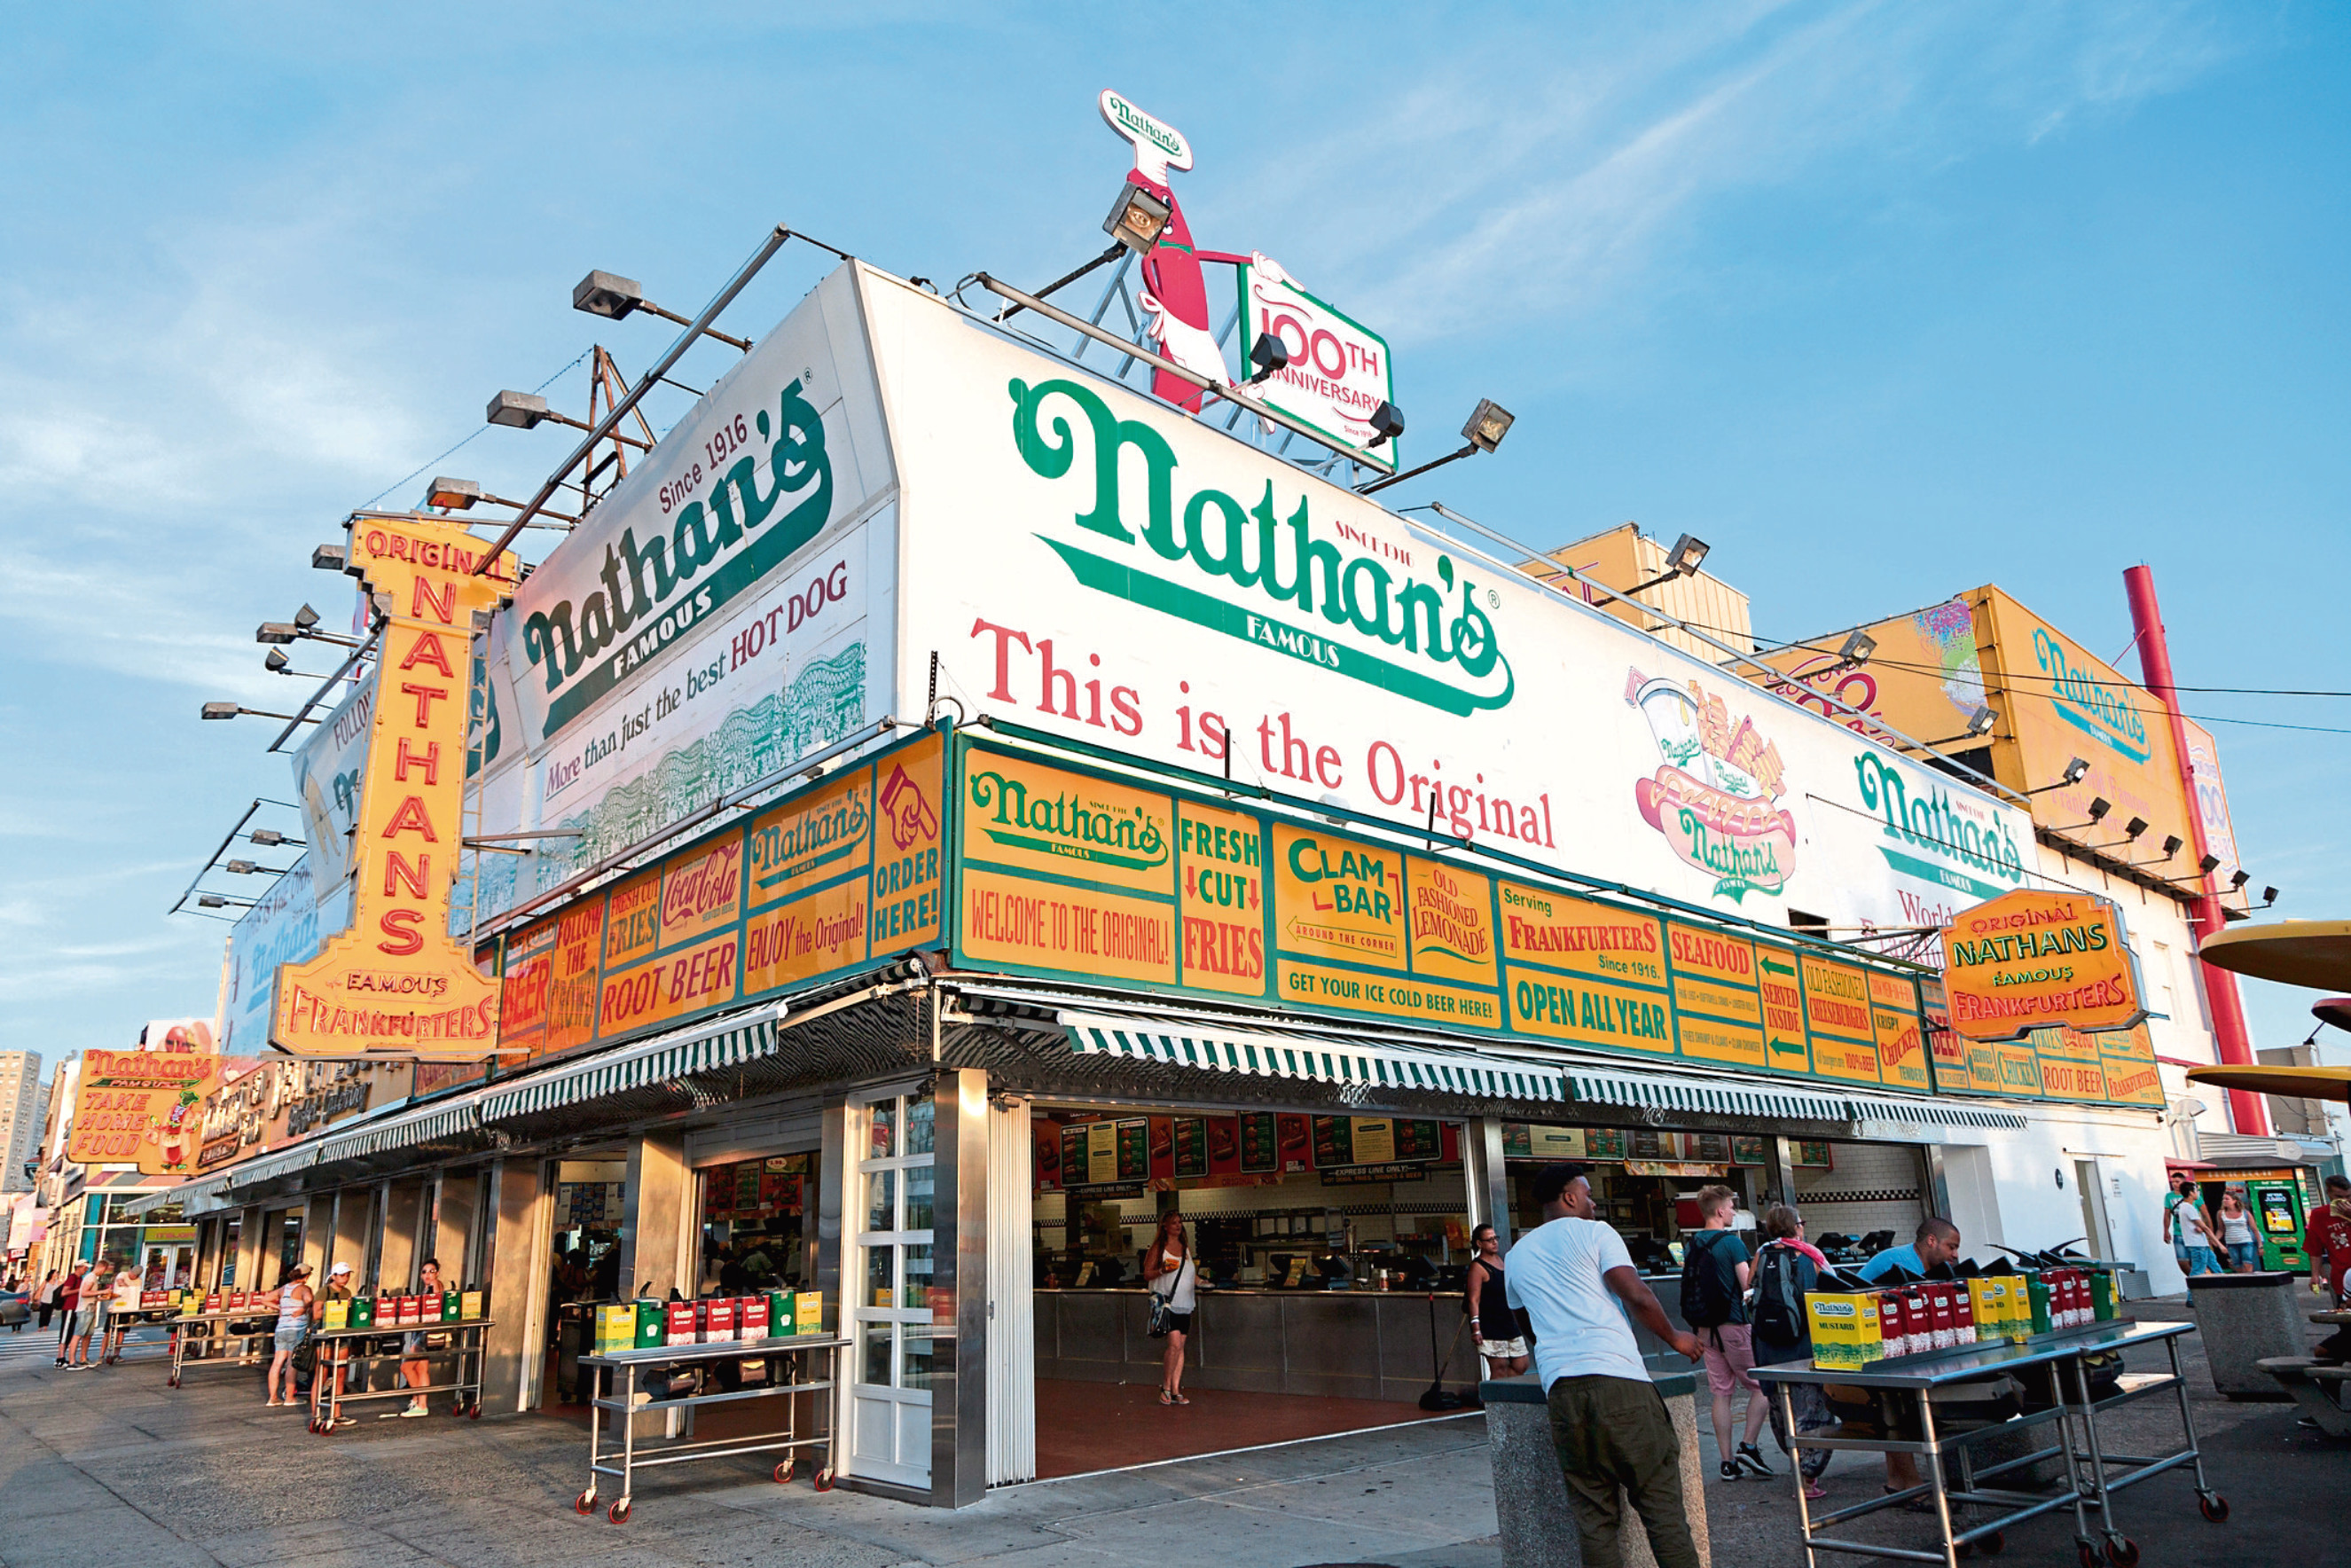 The Nathan's original restaurant at Coney Island. The original Nathan's still exists on the same site that it did in 1916.